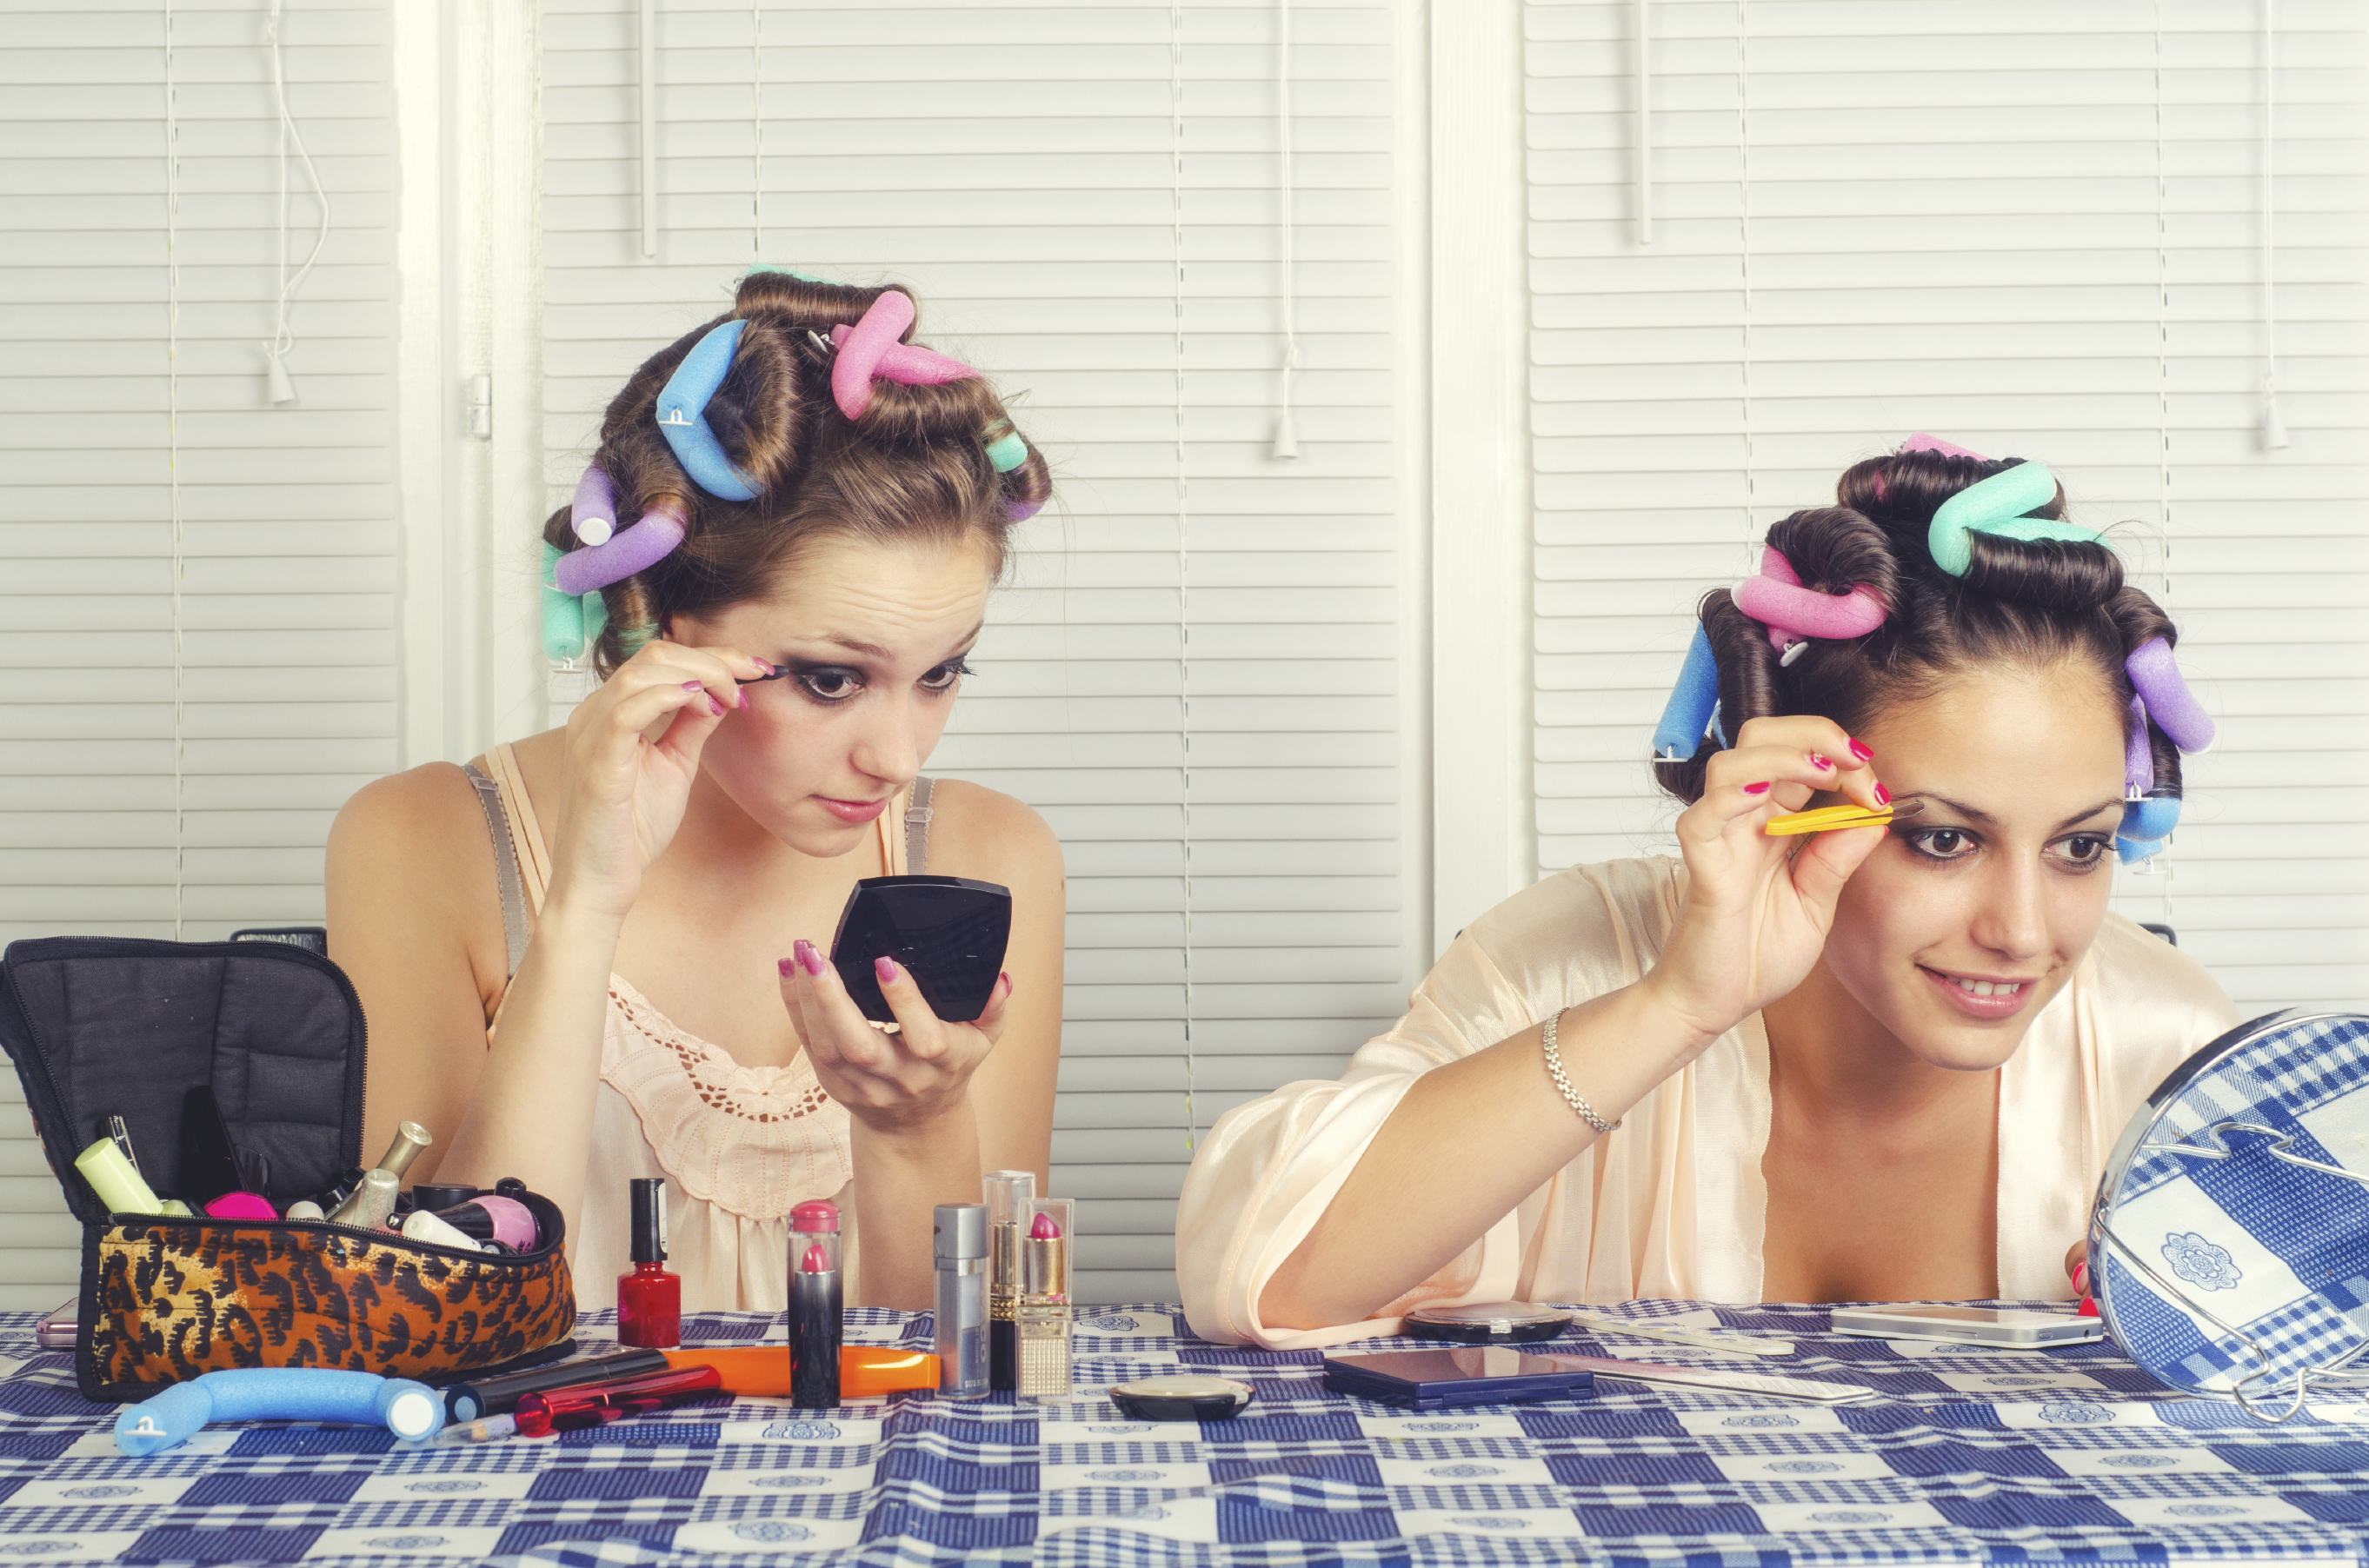 Two young housewives beautifying themselves at home